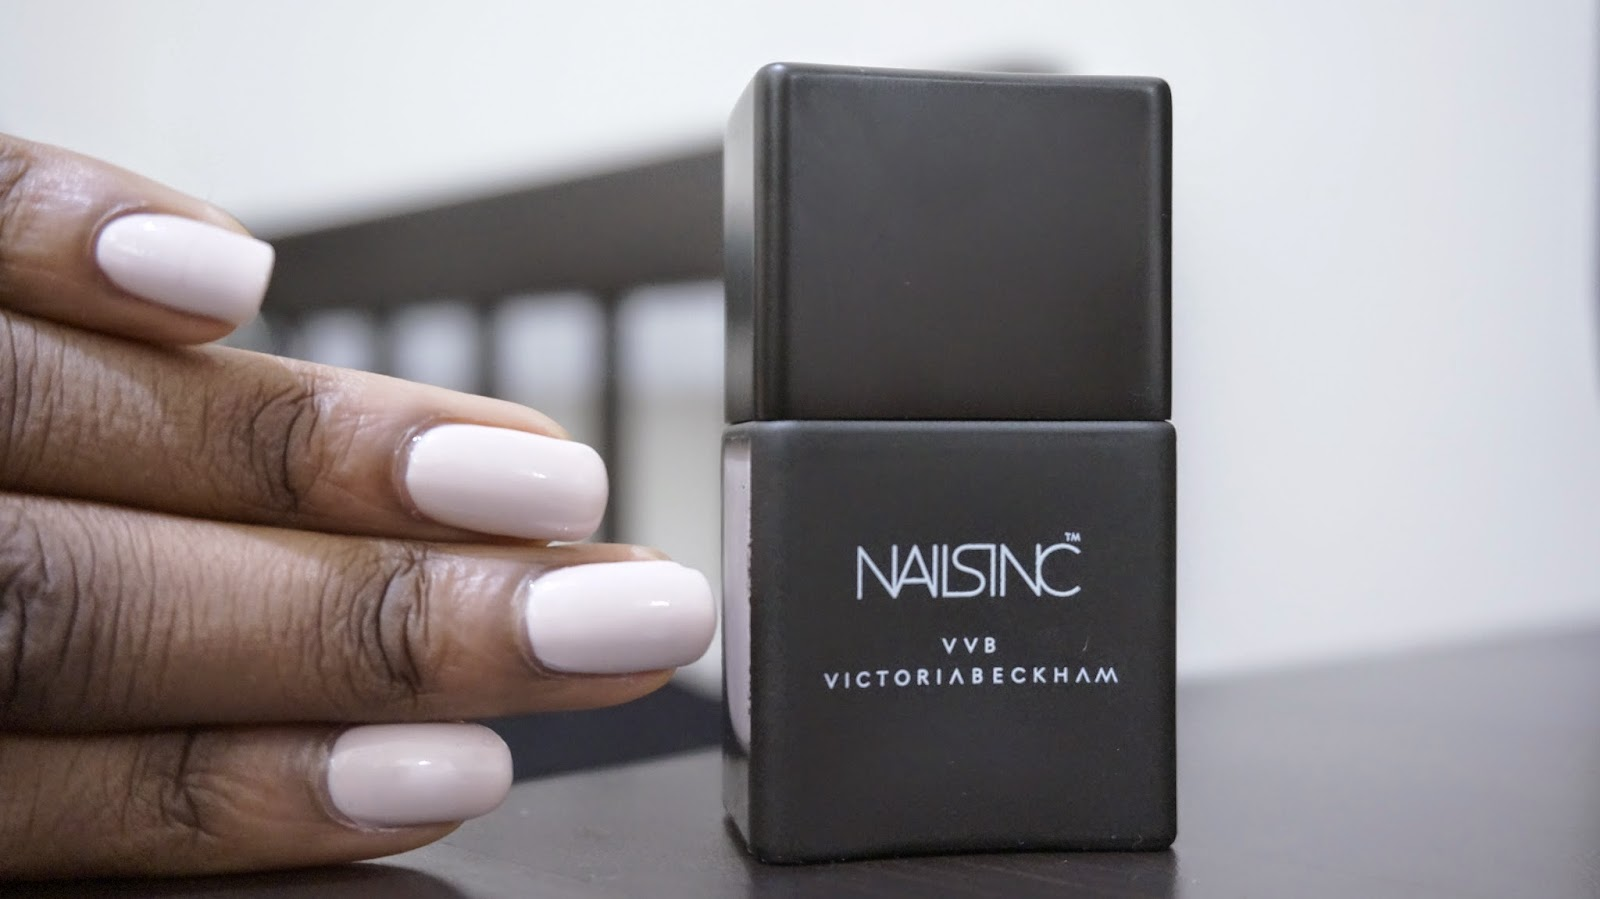 Nail Paint Of The Week Vvb X Nails Inc Bamboo White